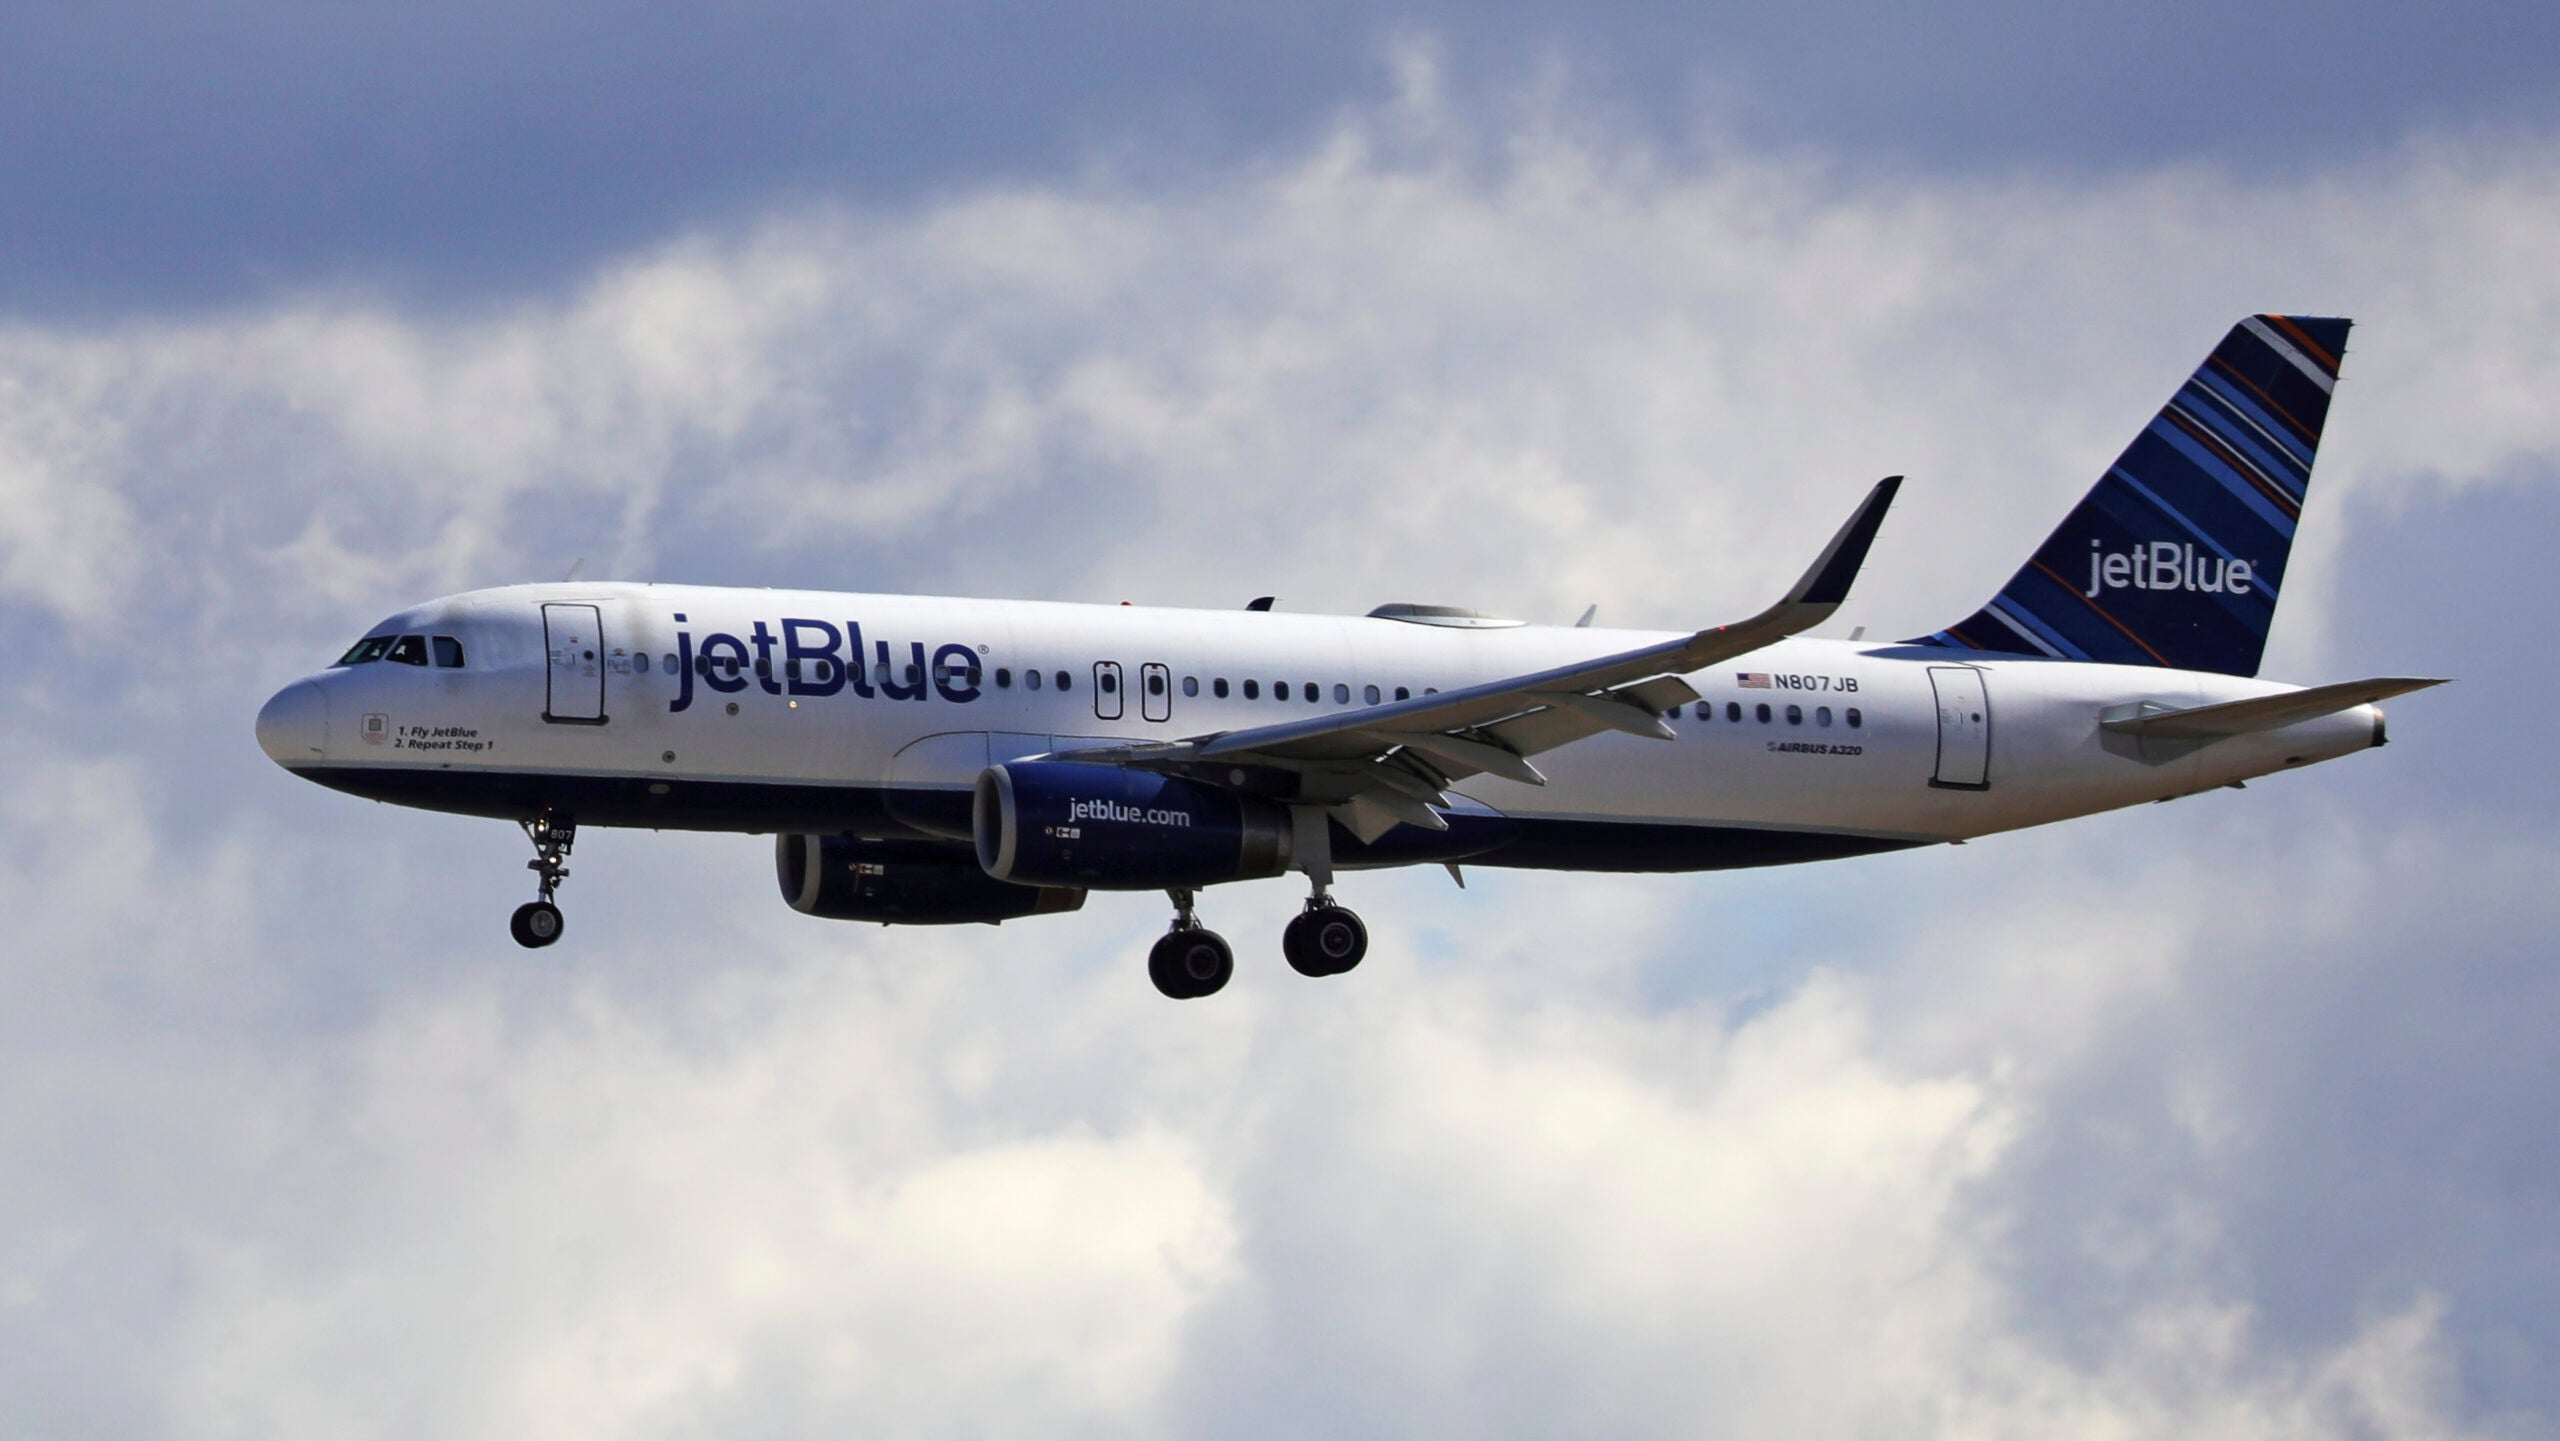 JetBlue named among 10 best low cost airlines for 2021